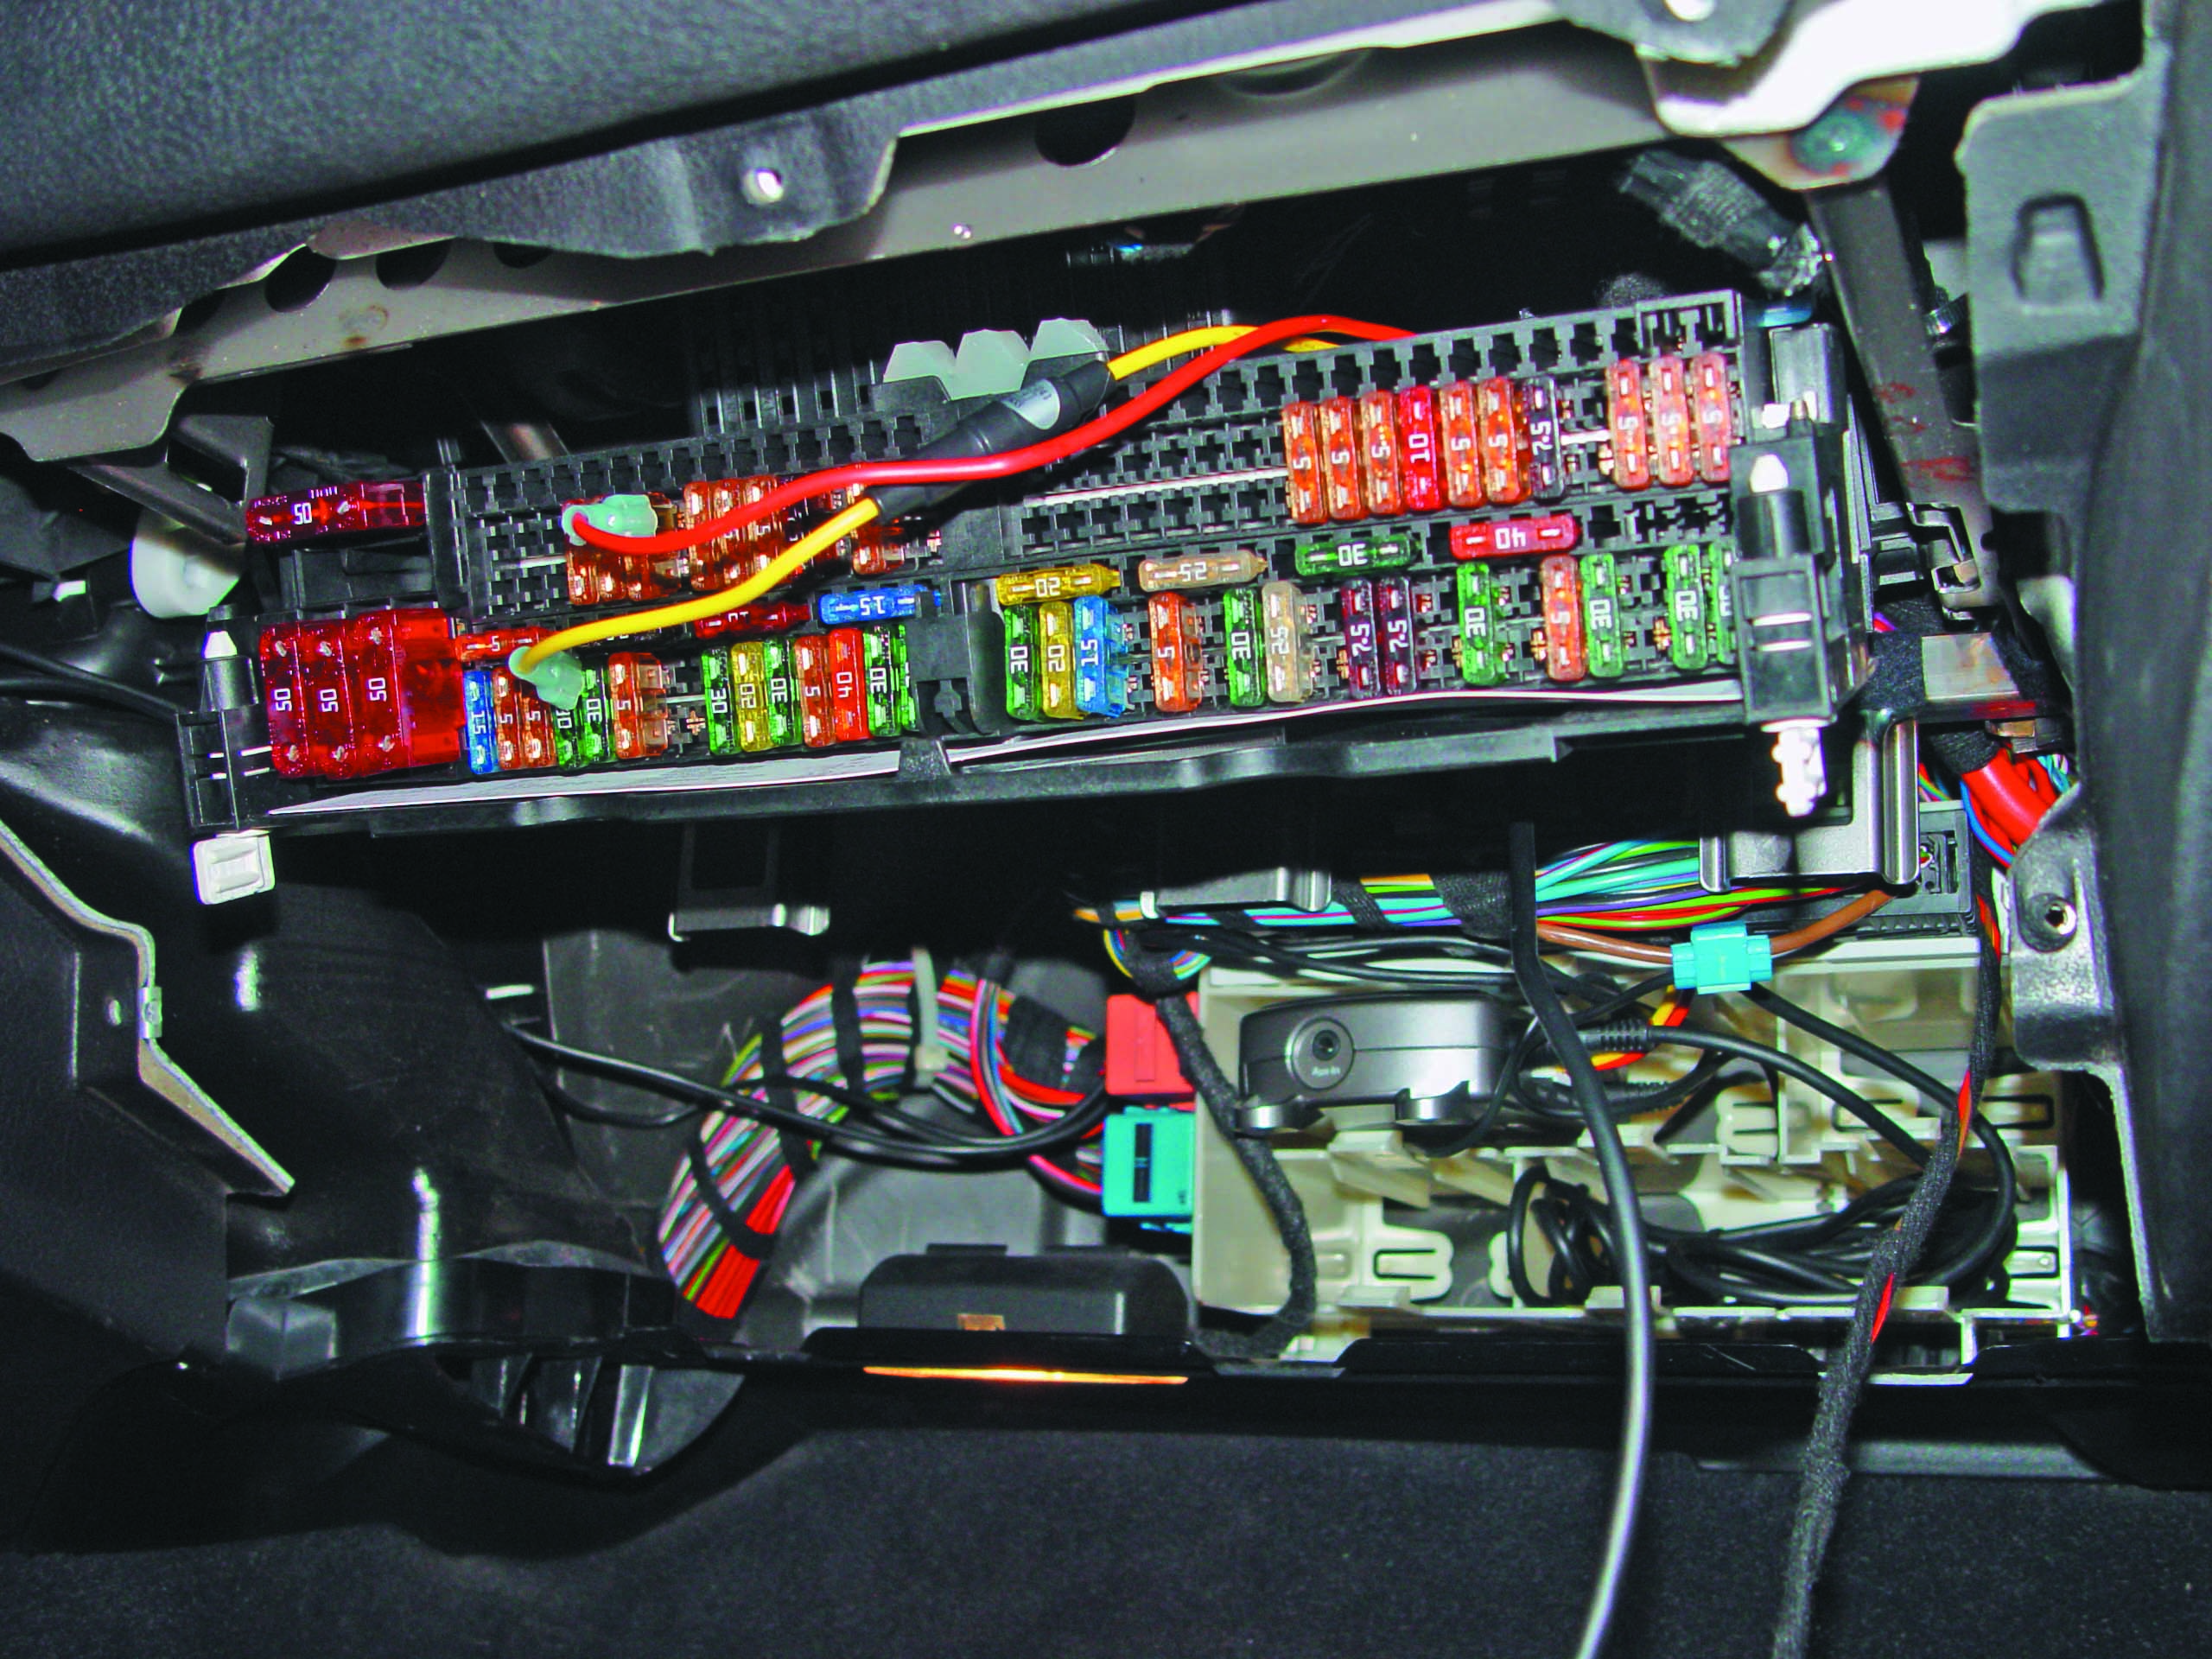 Geo Metro Fuse Diagram Another Blog About Wiring Acdelco Radio 96 Caddy 2003 Bmw 325i And Relay Location Autos Weblog 95 1996